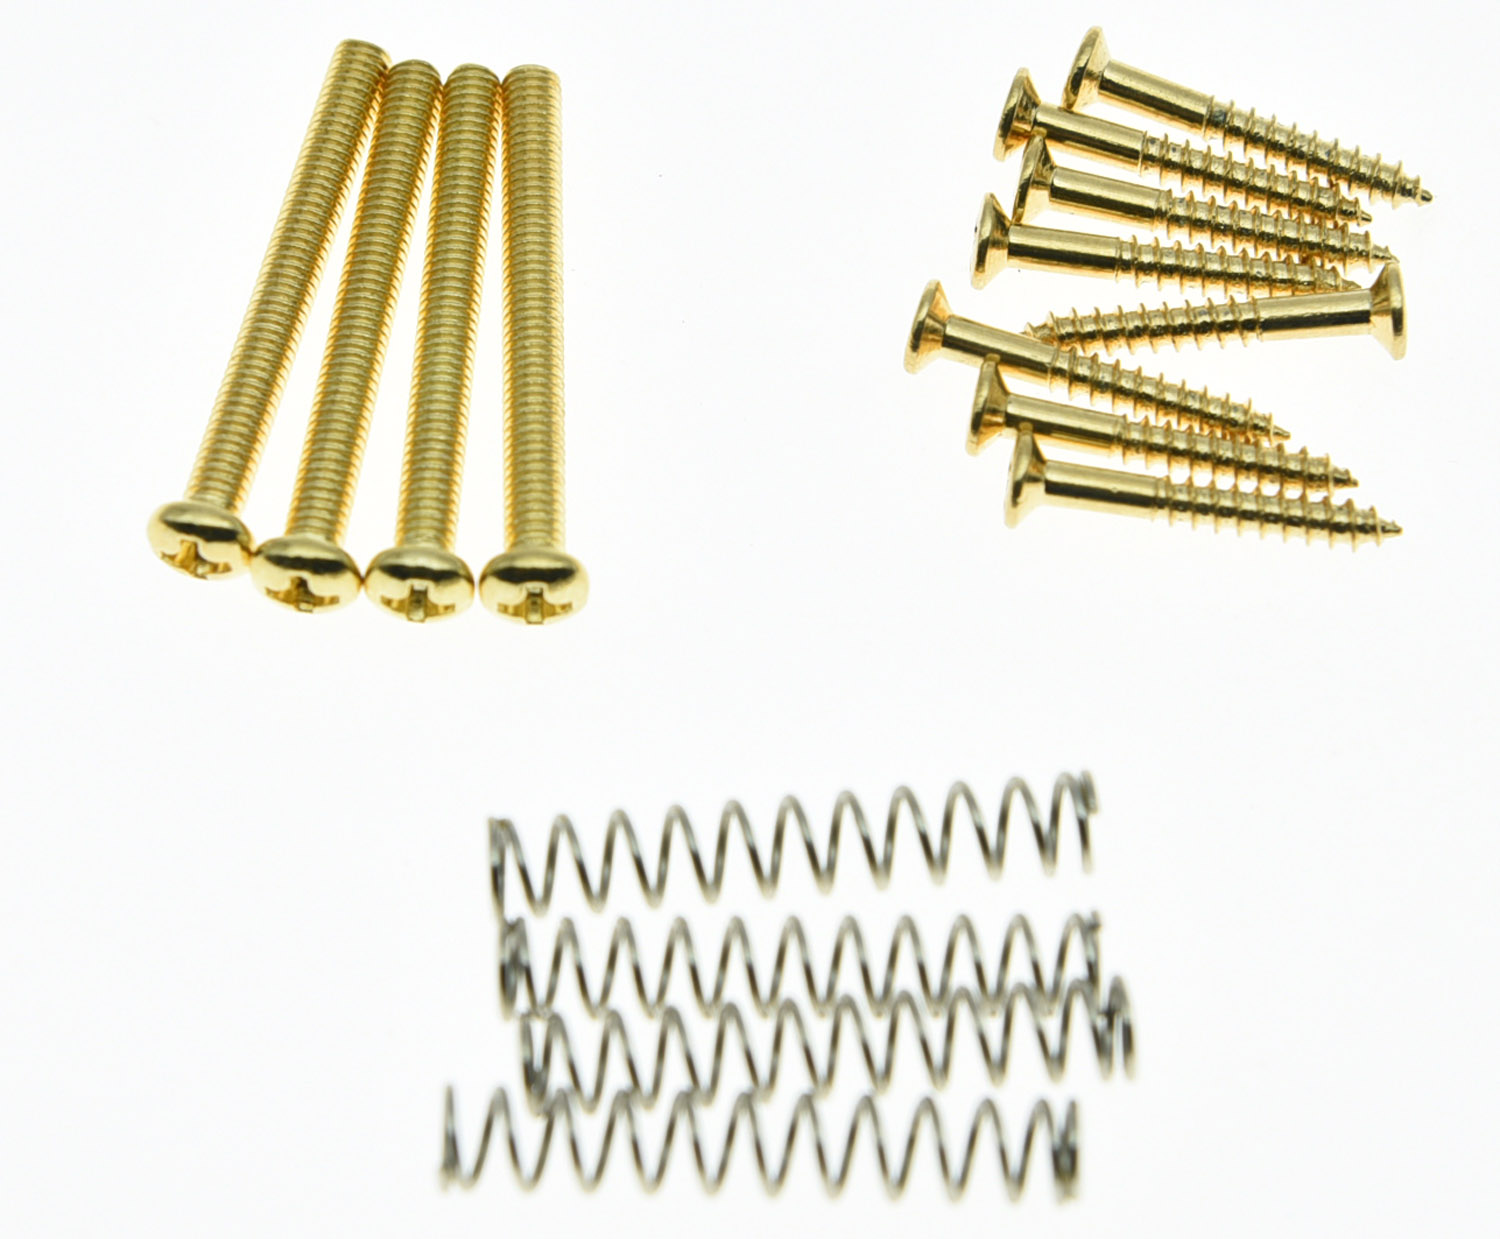 KAISH Gold Humbucker Pickup Height Screws Kit Pickup Ring Surround Mounting Screws niko 50pcs chrome single coil pickup screws